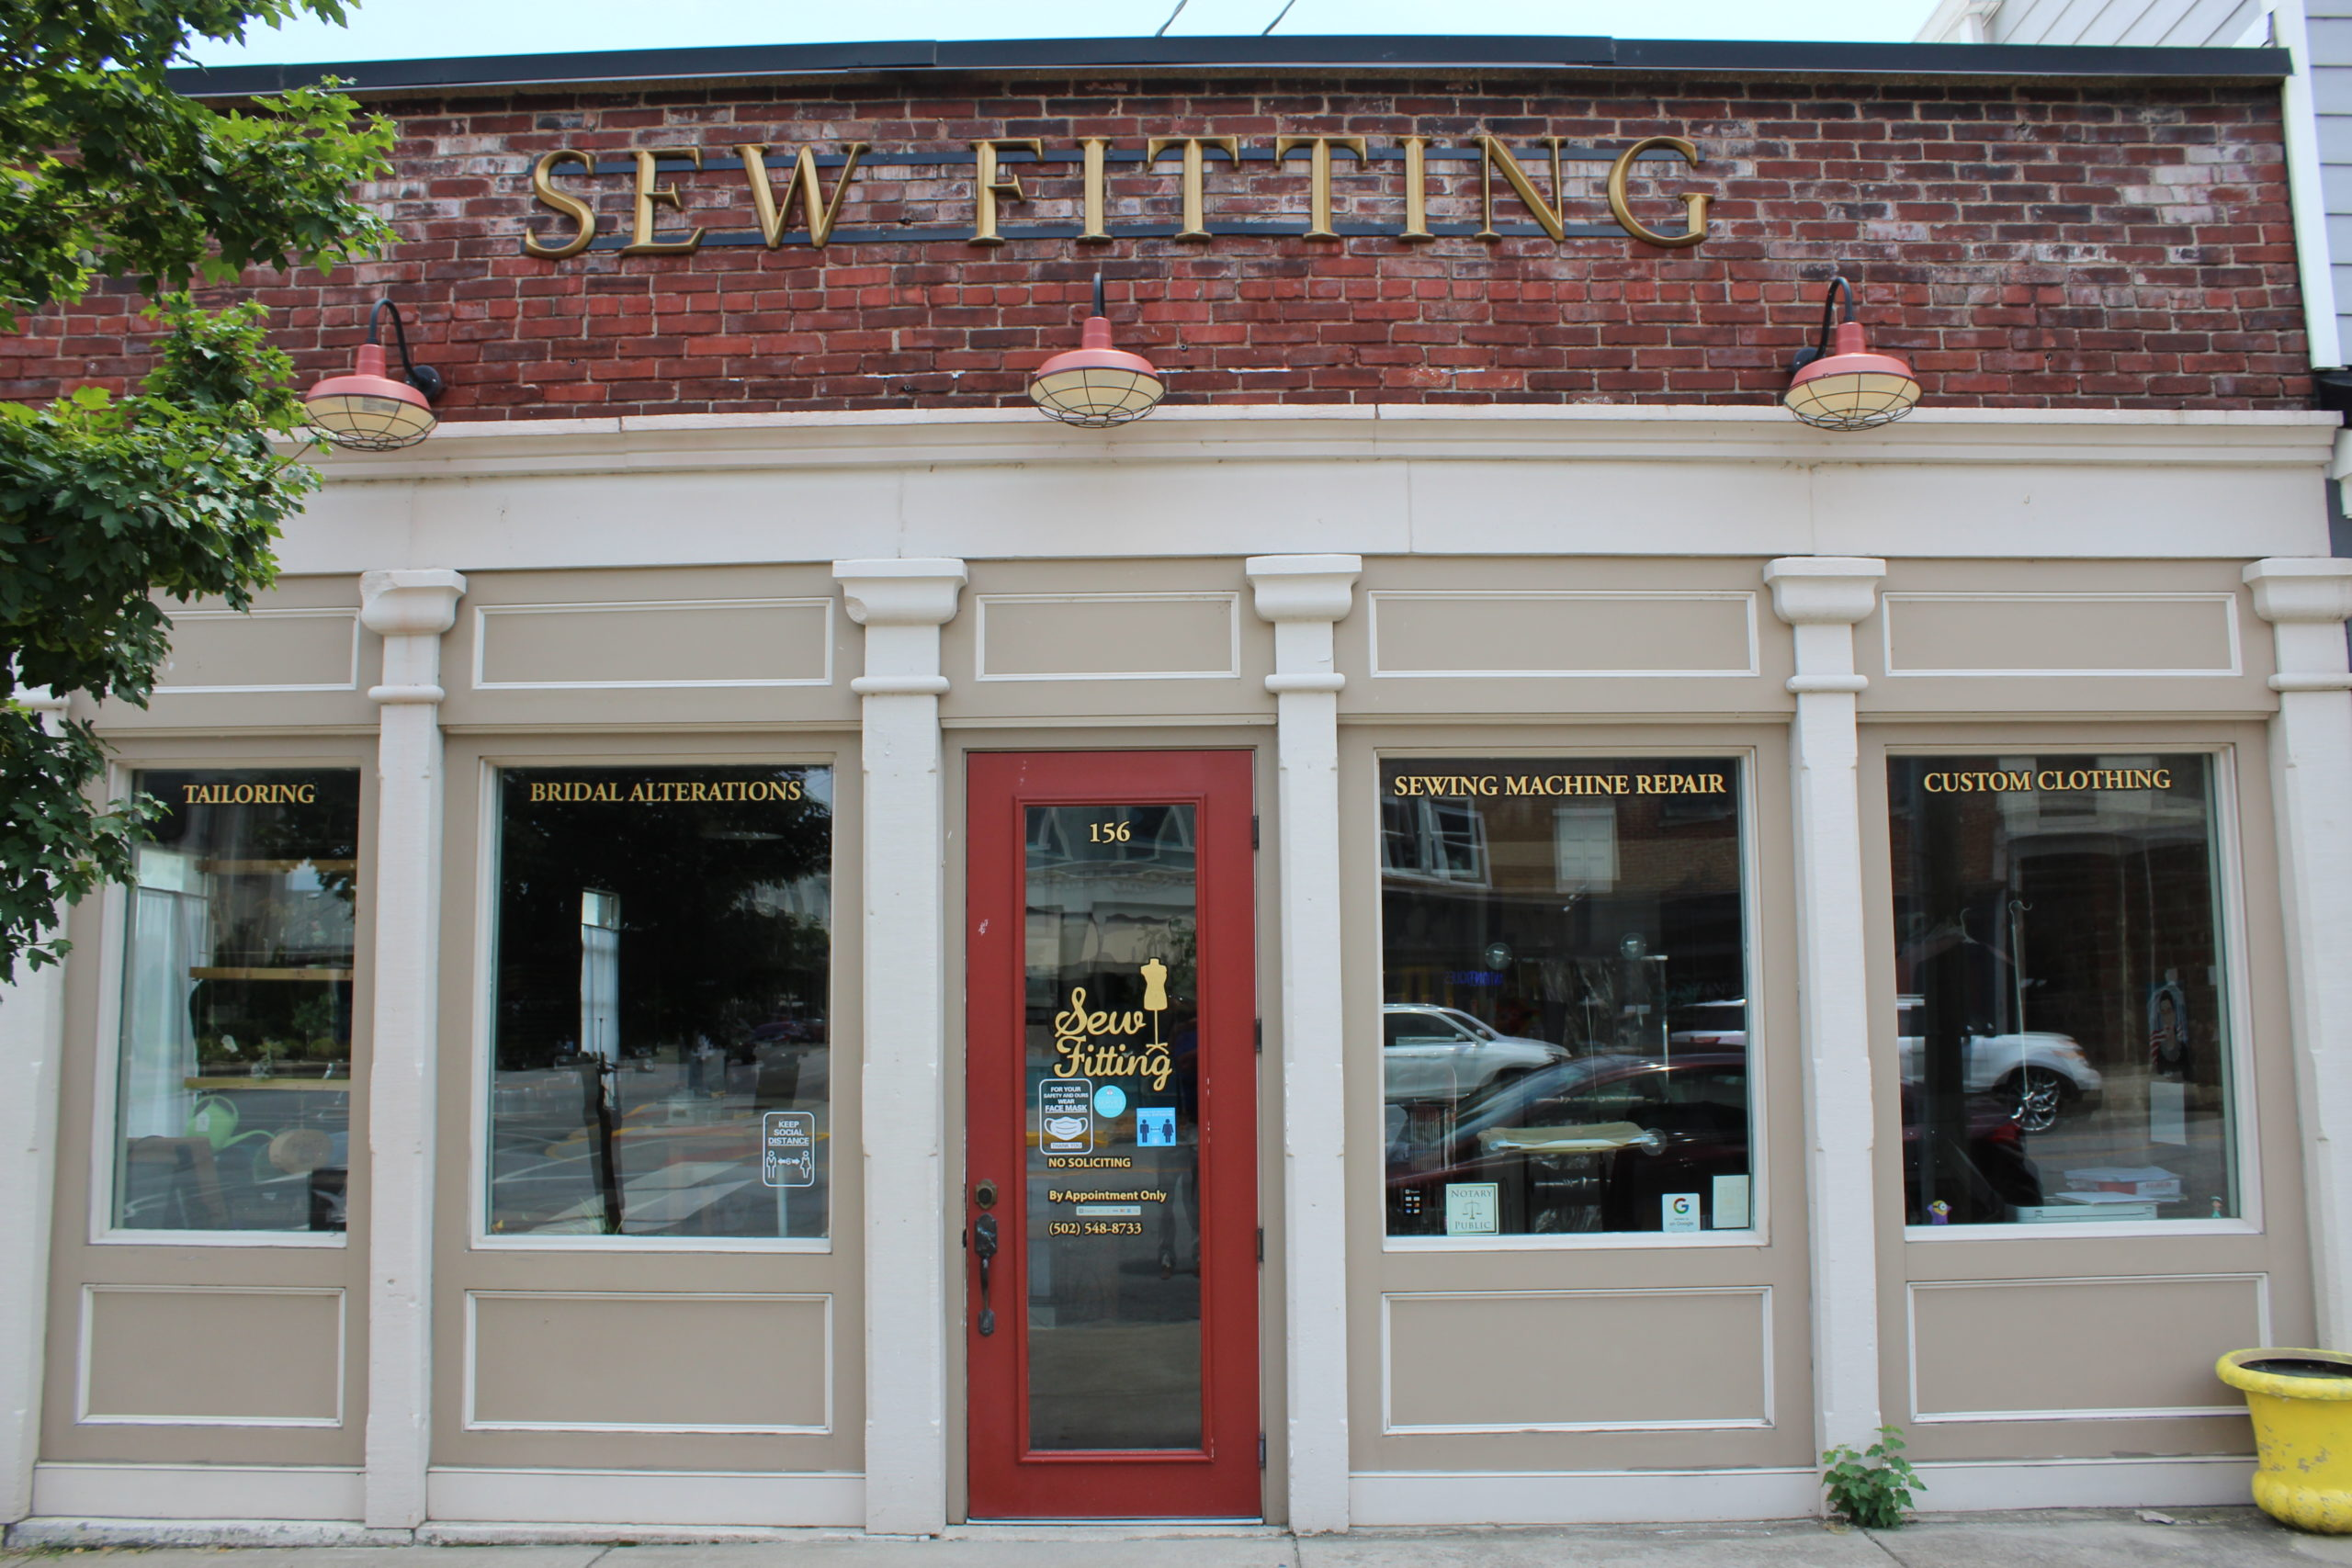 Sew Fitting store front